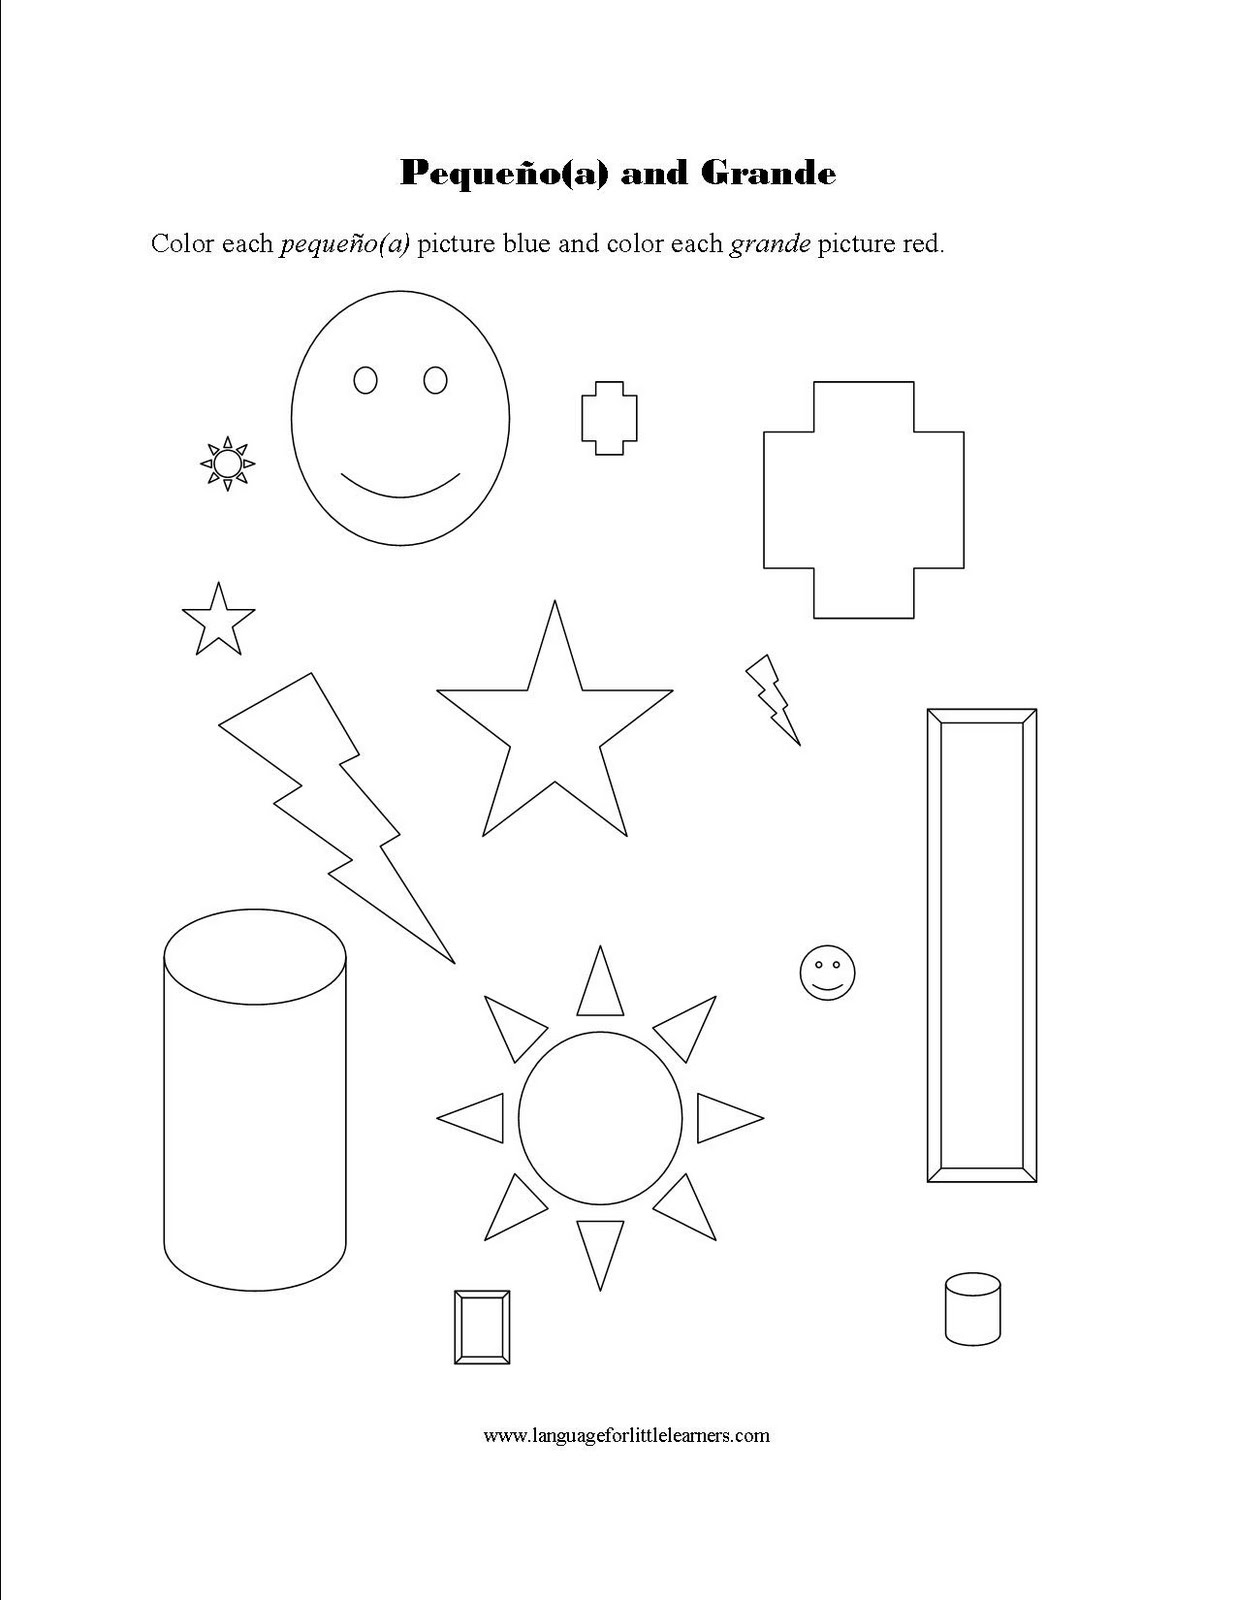 Spanish For Little Learners Spanish Small And Big Worksheet